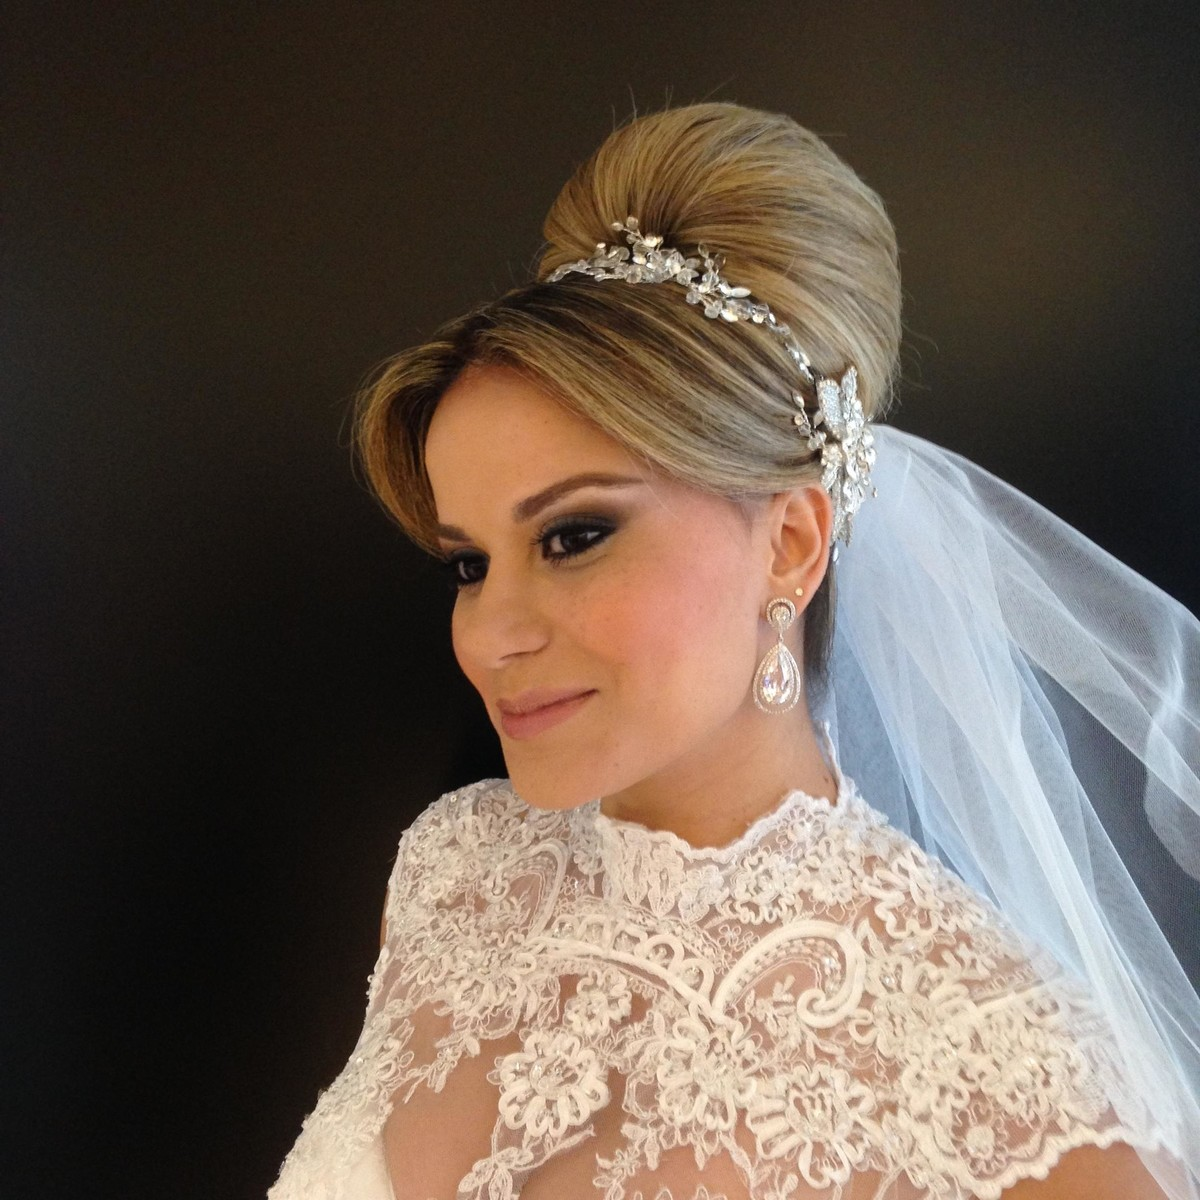 Penteado Diego Queiroz | Make up Lili Ferraz